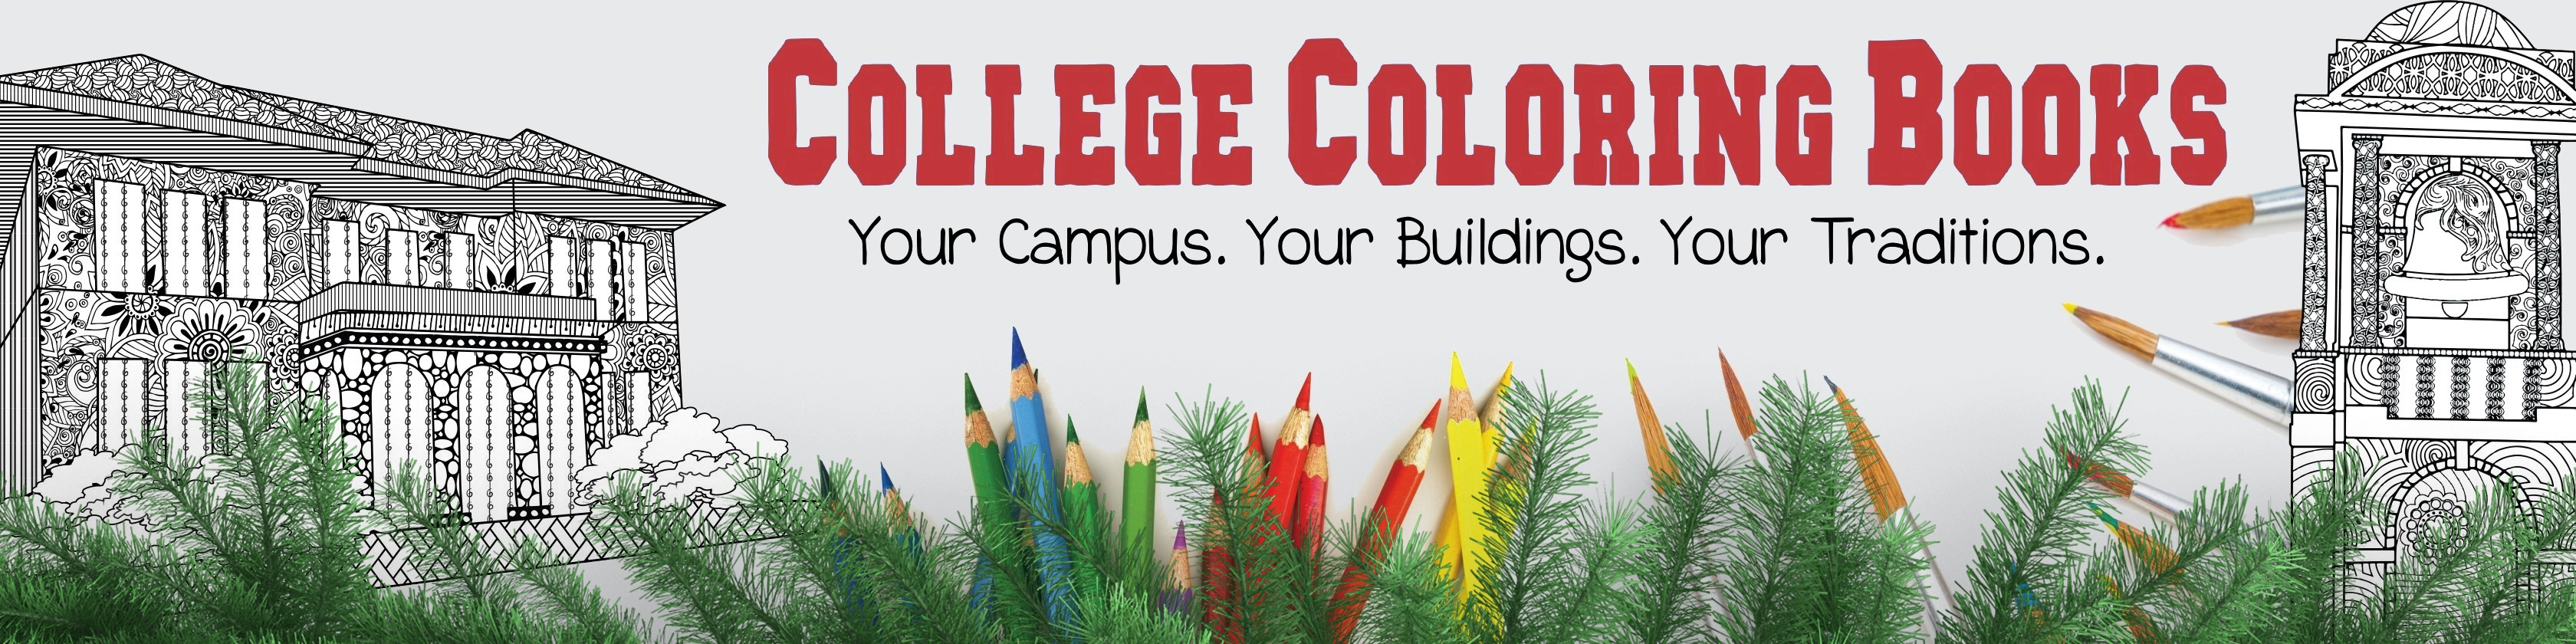 College Coloring Books Christmas Holiday Celebration